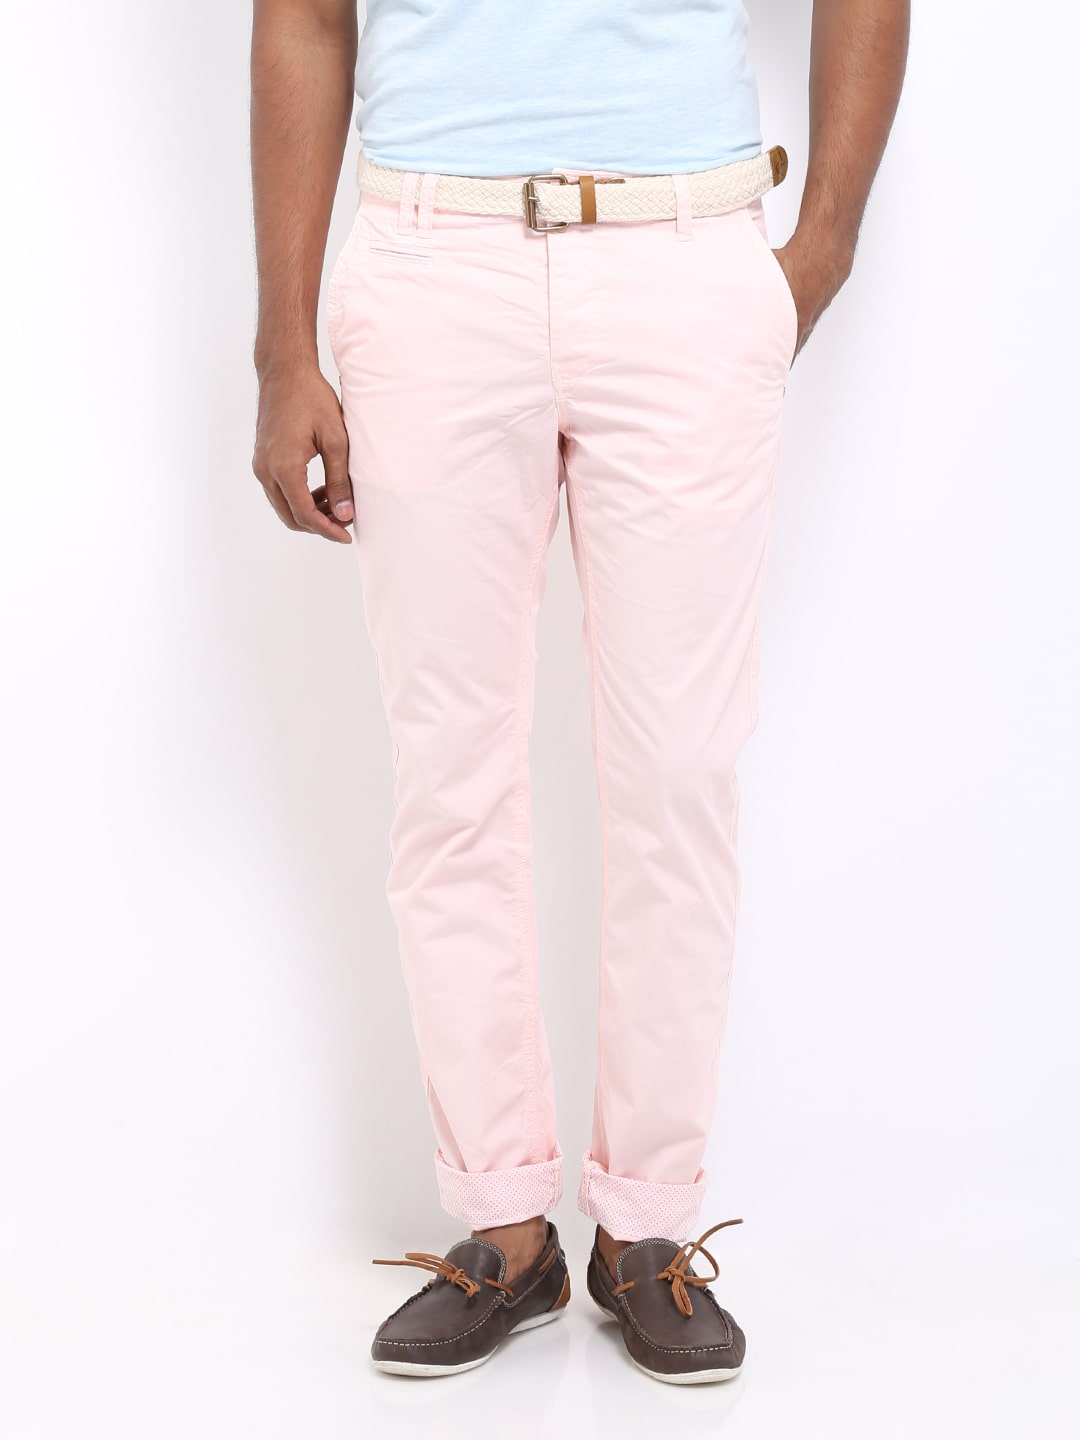 http://assets.myntassets.com/w_1080,q_80/v1/images/style/properties/Being-Human-Clothing-Men-Light-Pink-Slim-Fit-Chino-Trousers_c4a88af2b4e0509dac28cc05e52e3088_images.jpg